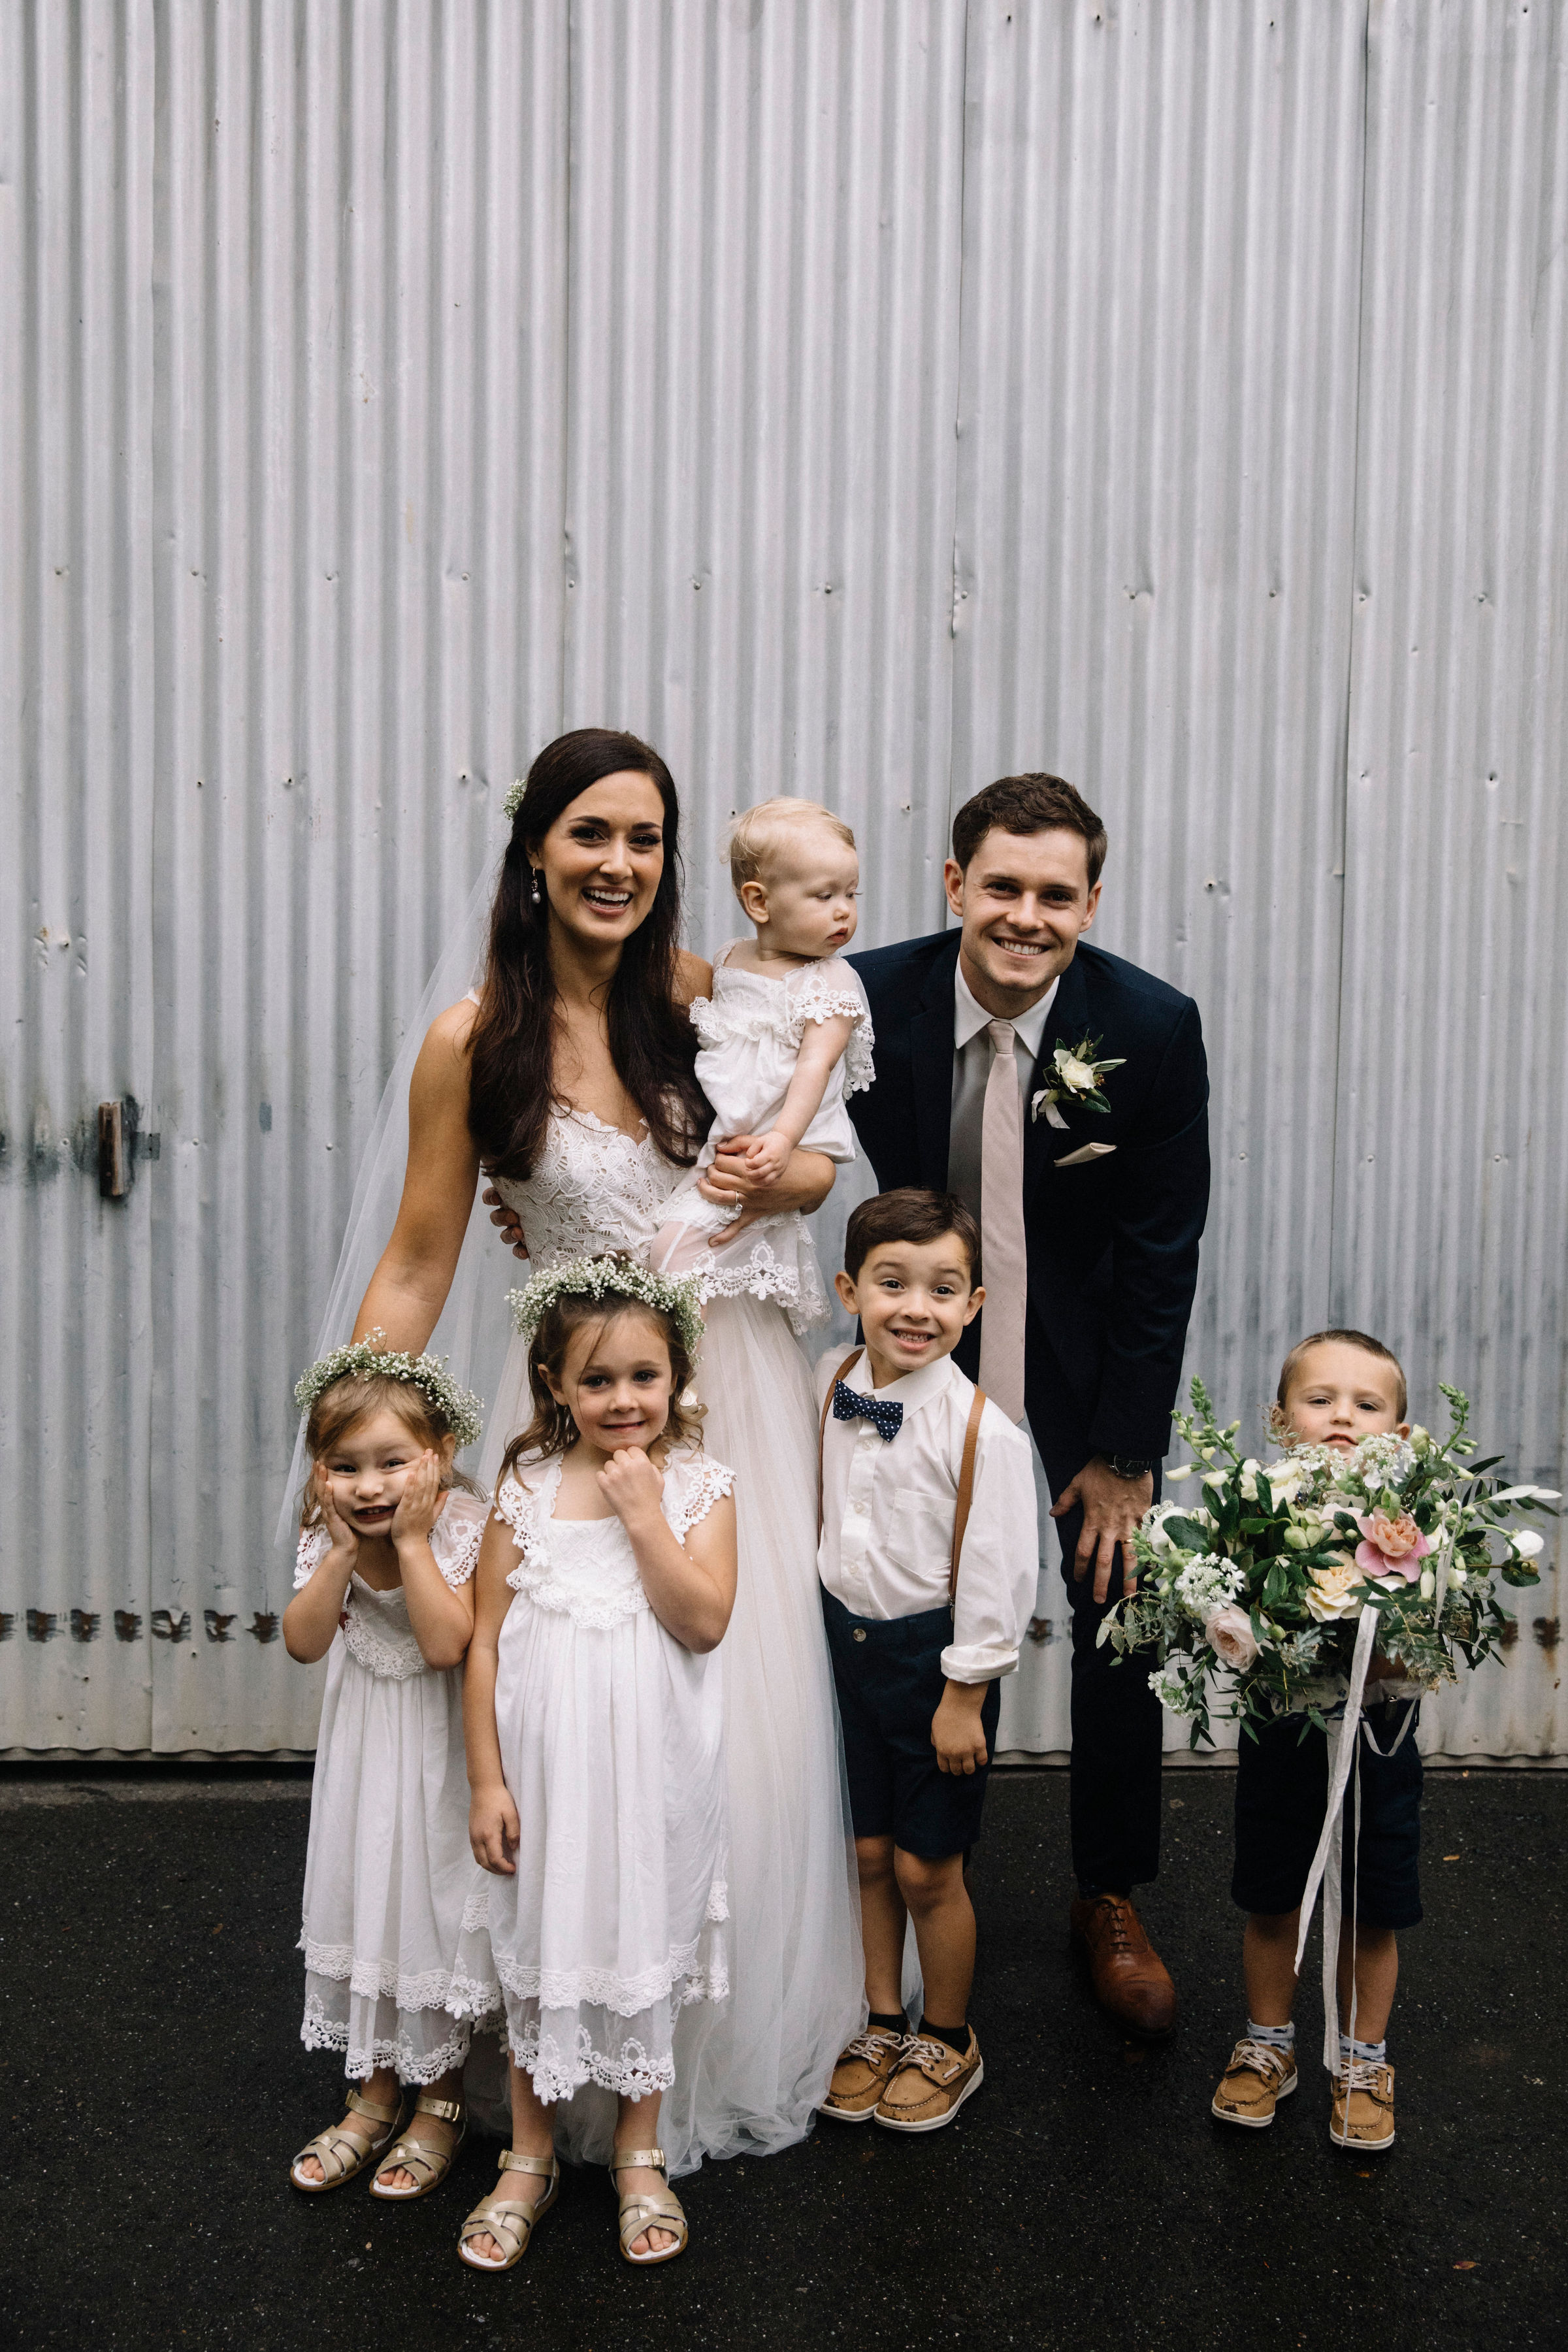 Romantic wedding flowers for the whole family by Venn Floral at Ru's Farm photographed by Lucille Lawrence in Healdsburg, California.